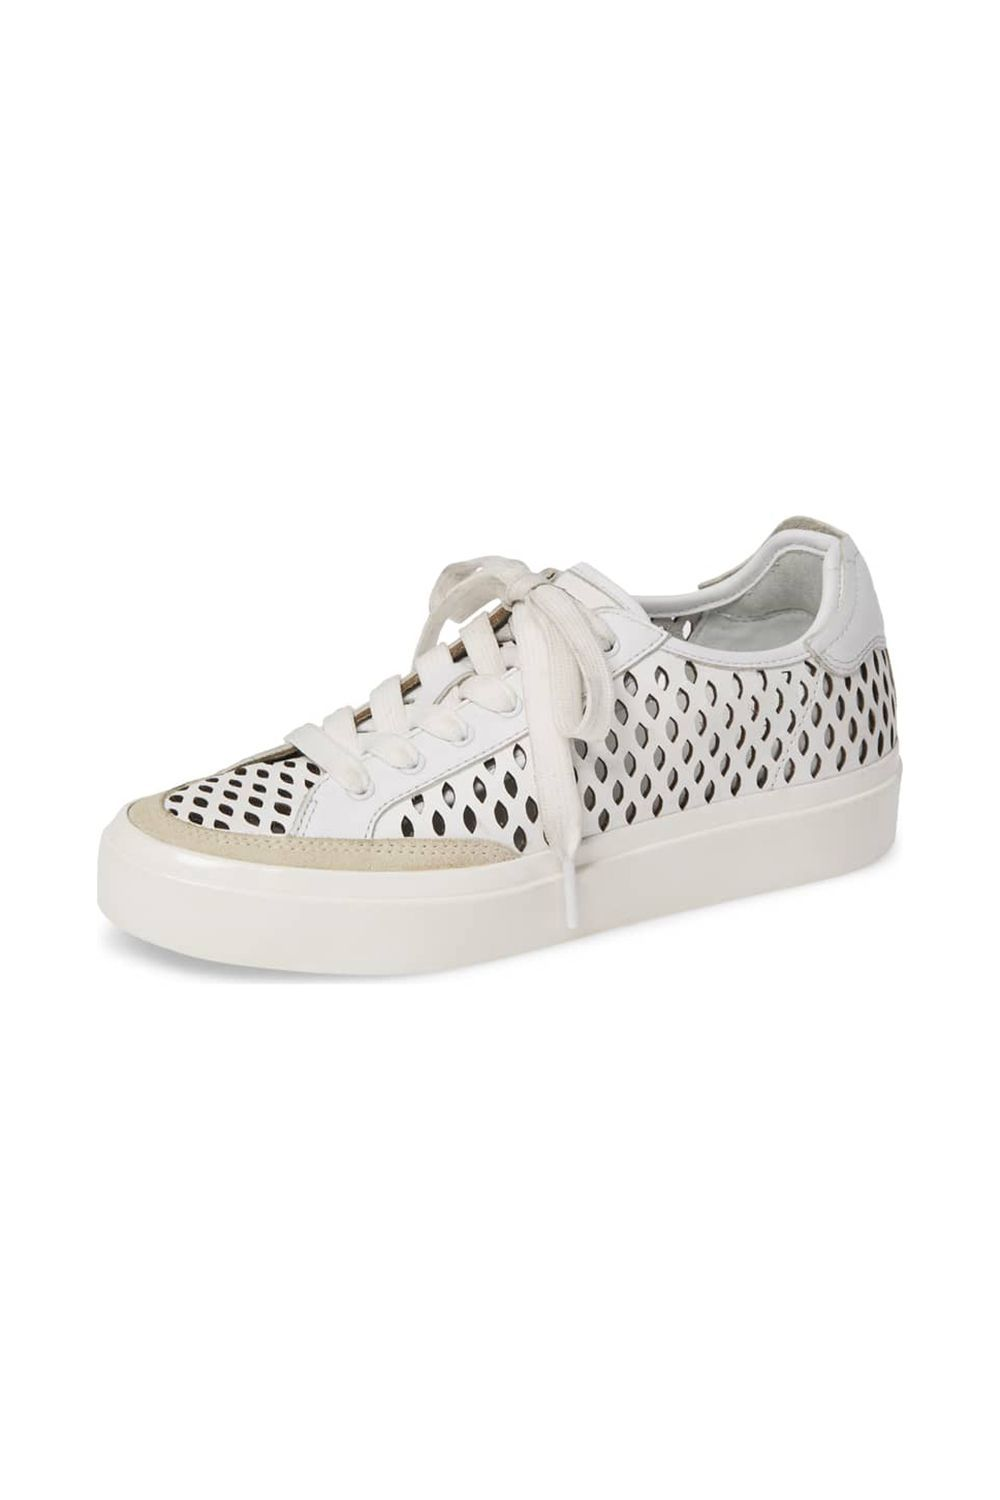 Army Cutout Leather Low-Top Sneakers Rag & Bone neimanmarcus.com $250.00 SHOP IT The perforated holes on this Rag & Bone sneaker will let your feet air out, so they're not trapped in a pool of sweat. The openings add a cool design to the sides and top of the shoe, too.